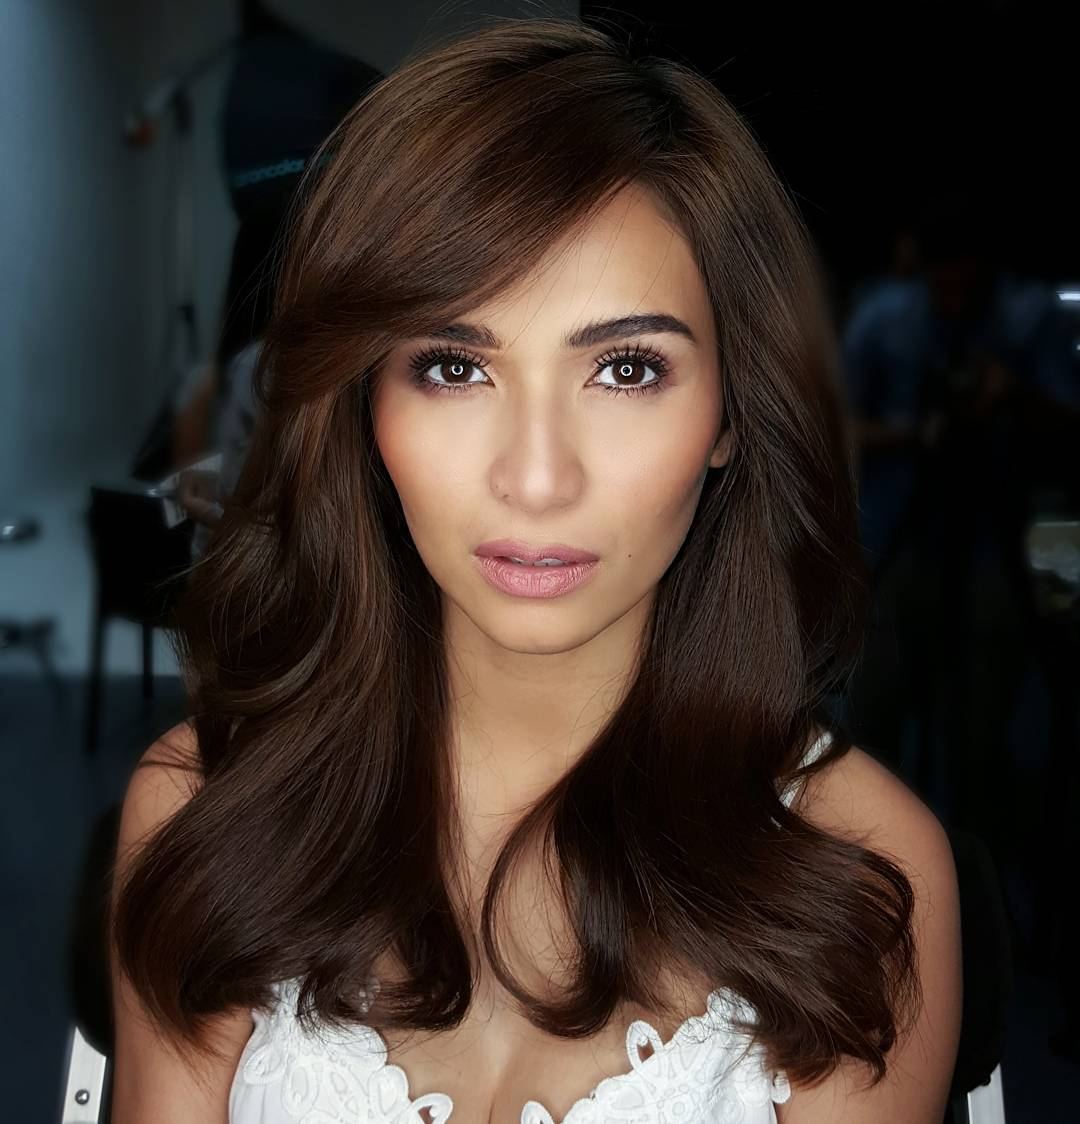 from Judson nude photo jennylyn mercado